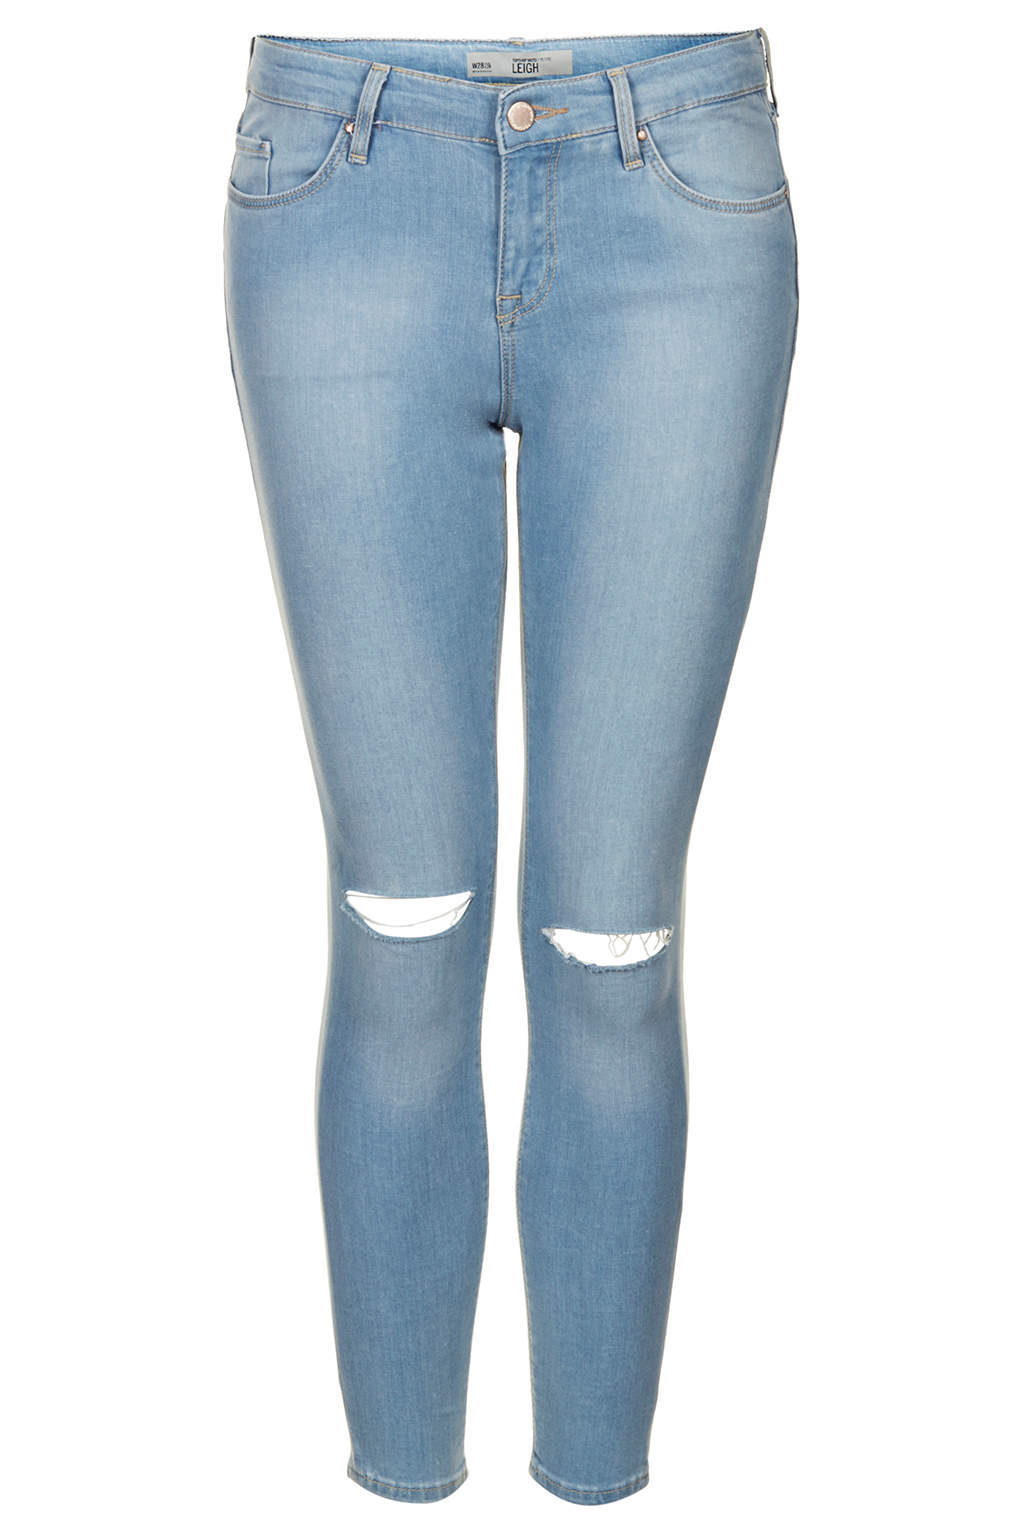 Ripped Skinny Jeans For Women